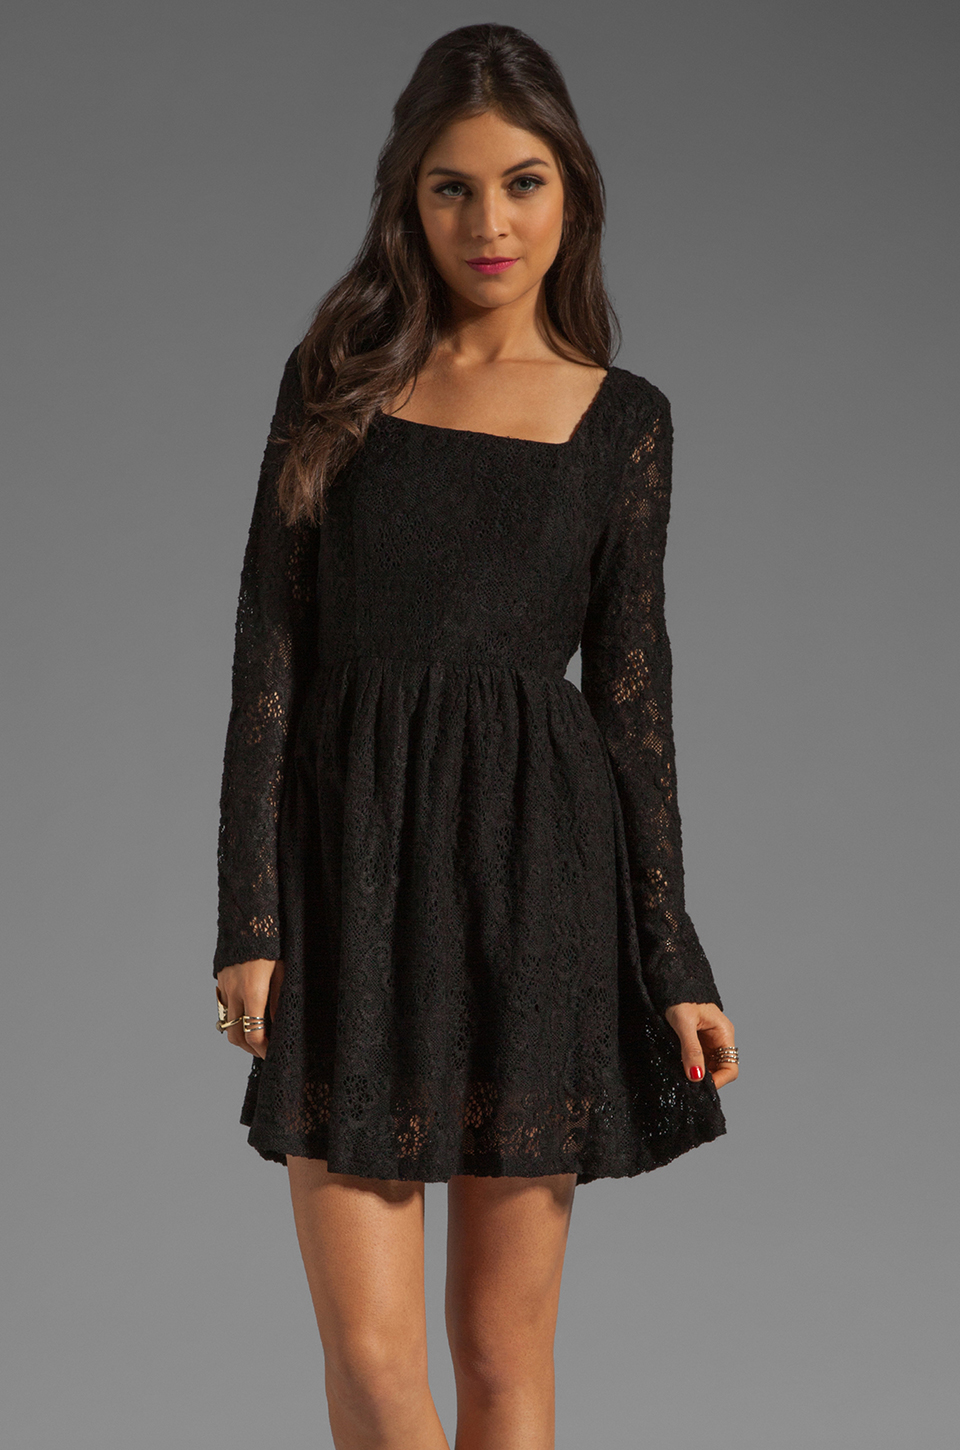 MINKPINK Lost Innocence Long Sleeve Lace Dress in Black